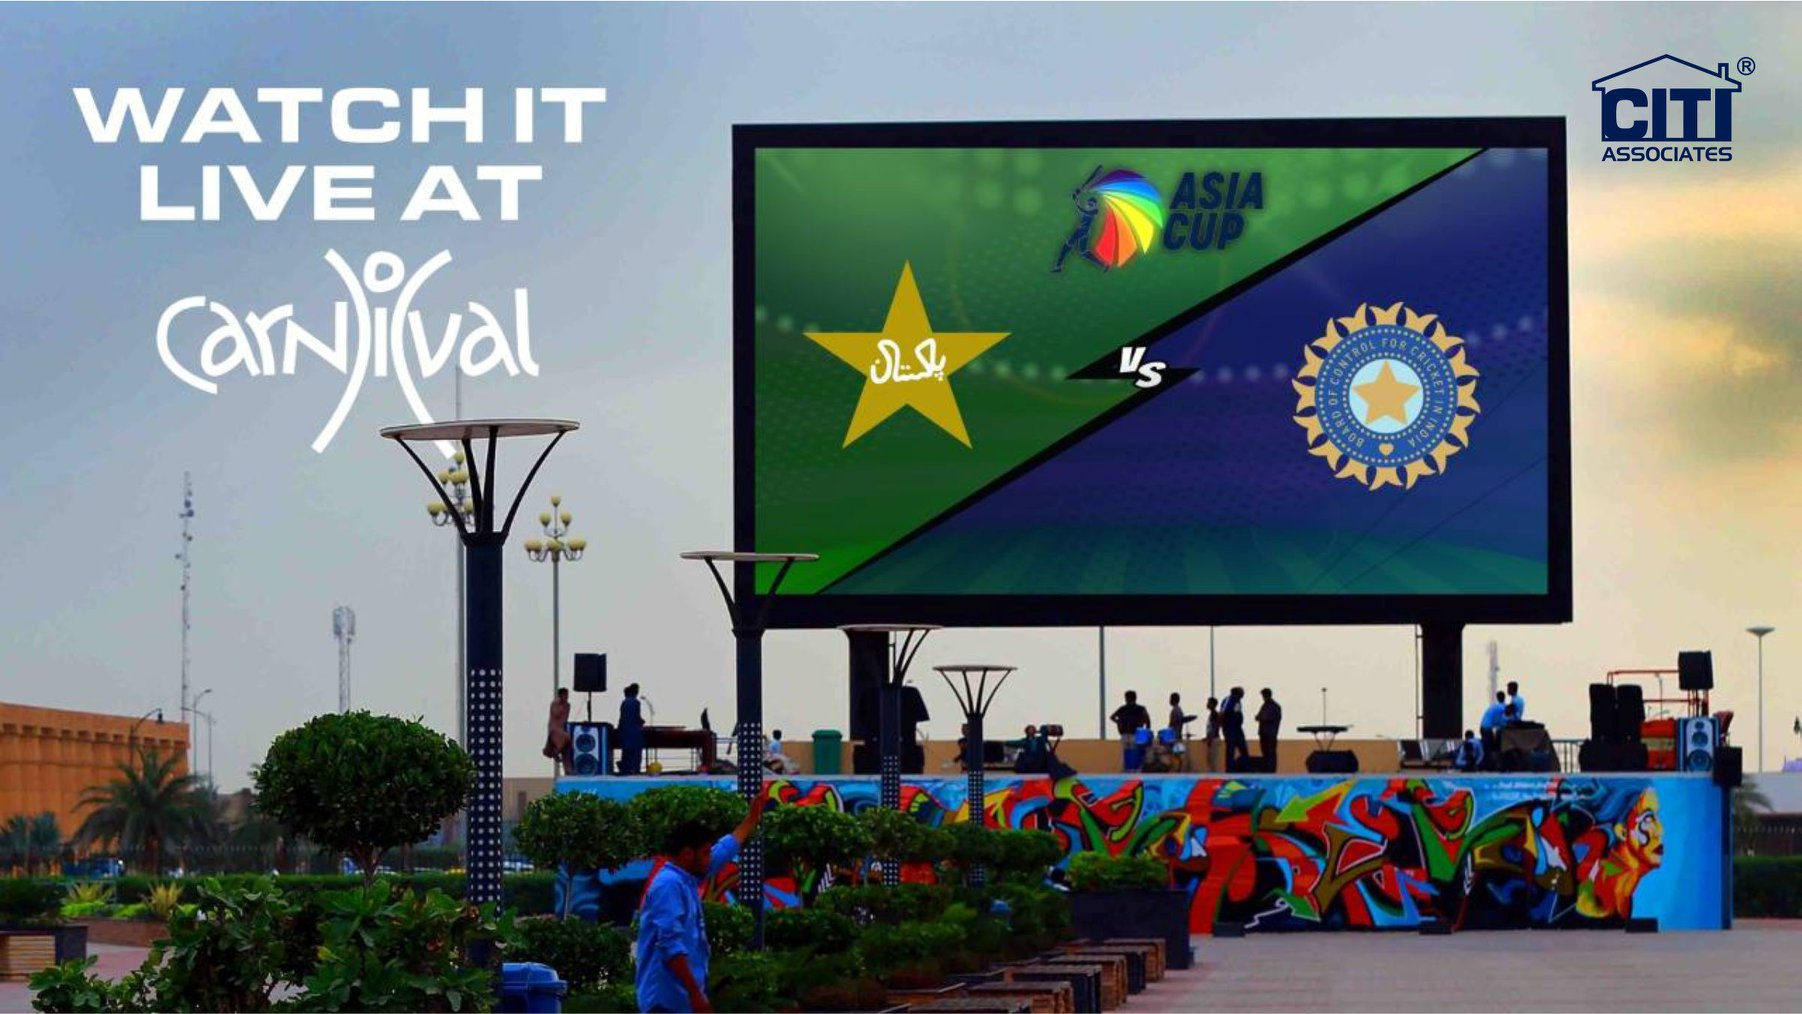 Watch Pakistan vs. India, Asia Cup 2018 Match LIVE at Carnival, Bahria Town Karachi